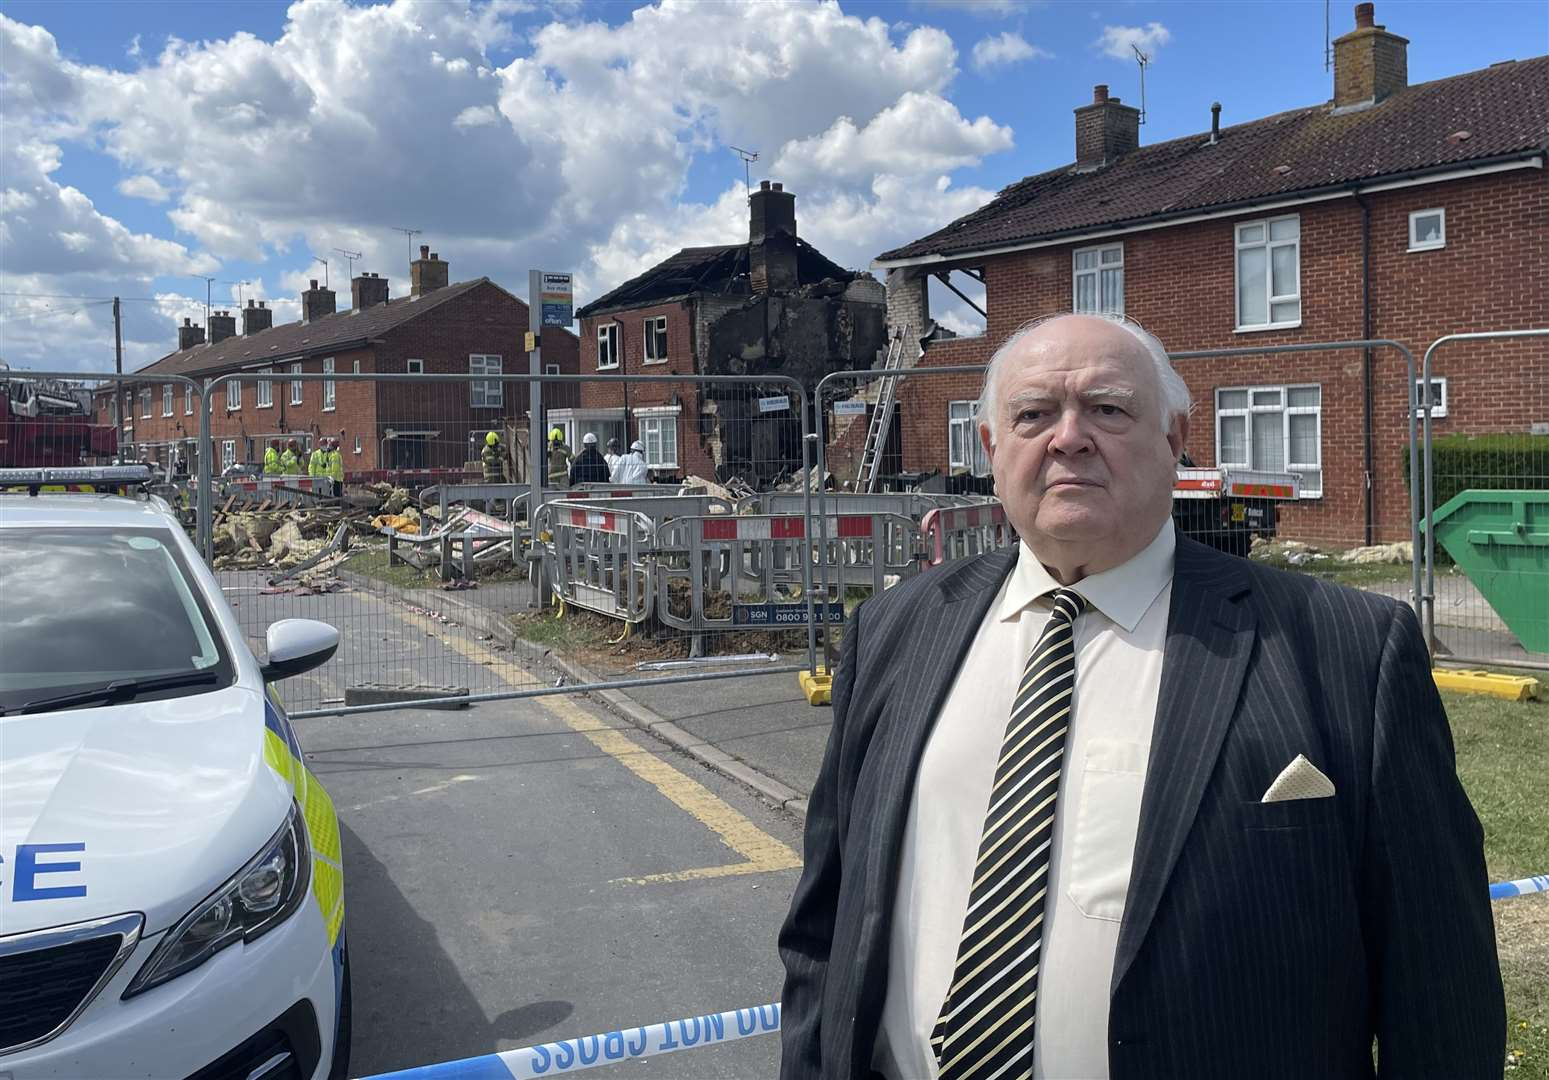 Four homes hit by explosion 'will have to be demolished'